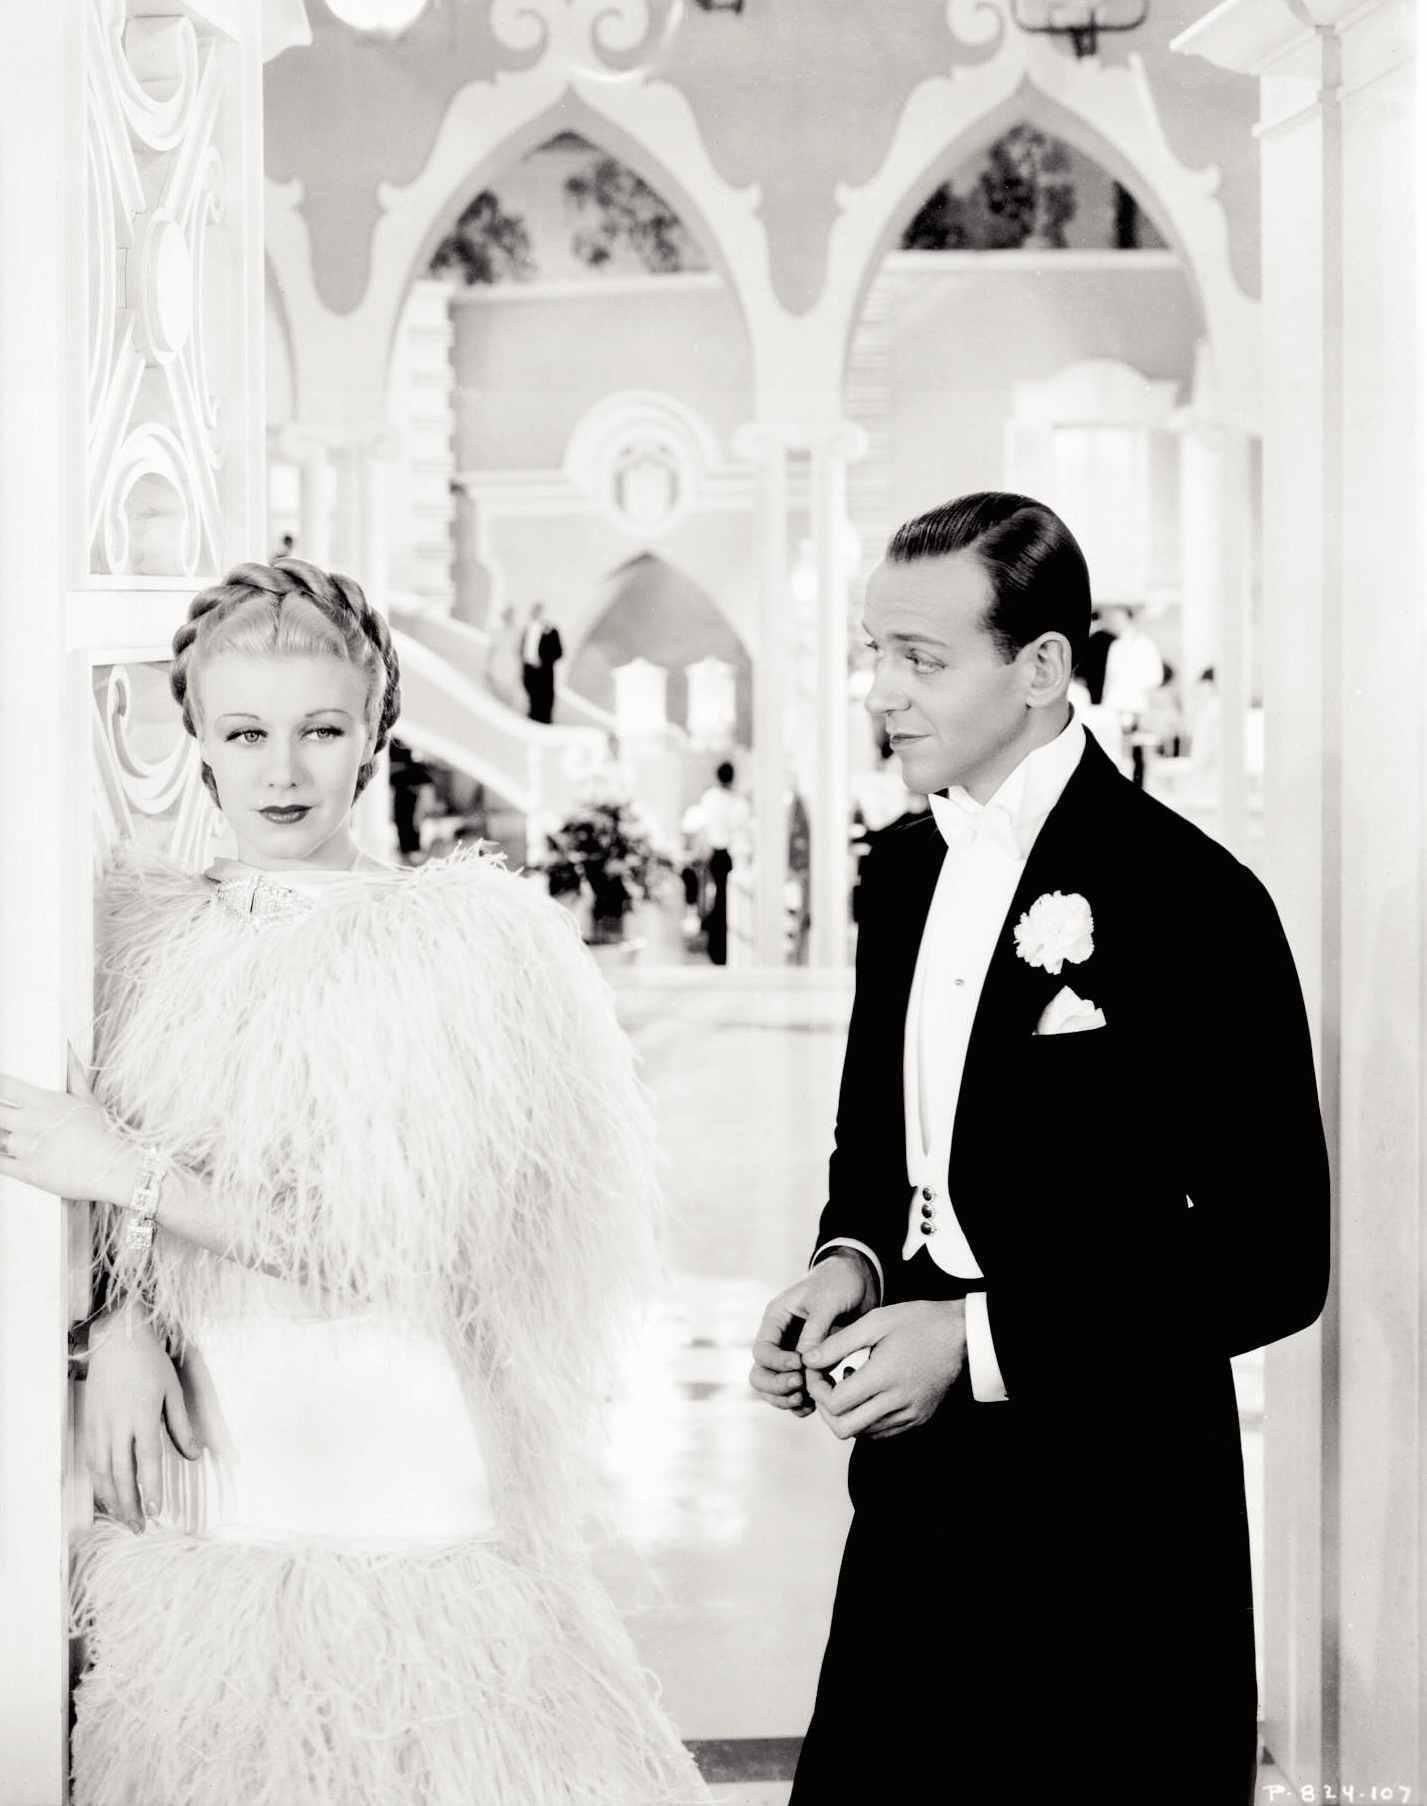 Top Hat 1935 Fred astaire, Fred and ginger, Ginger rogers